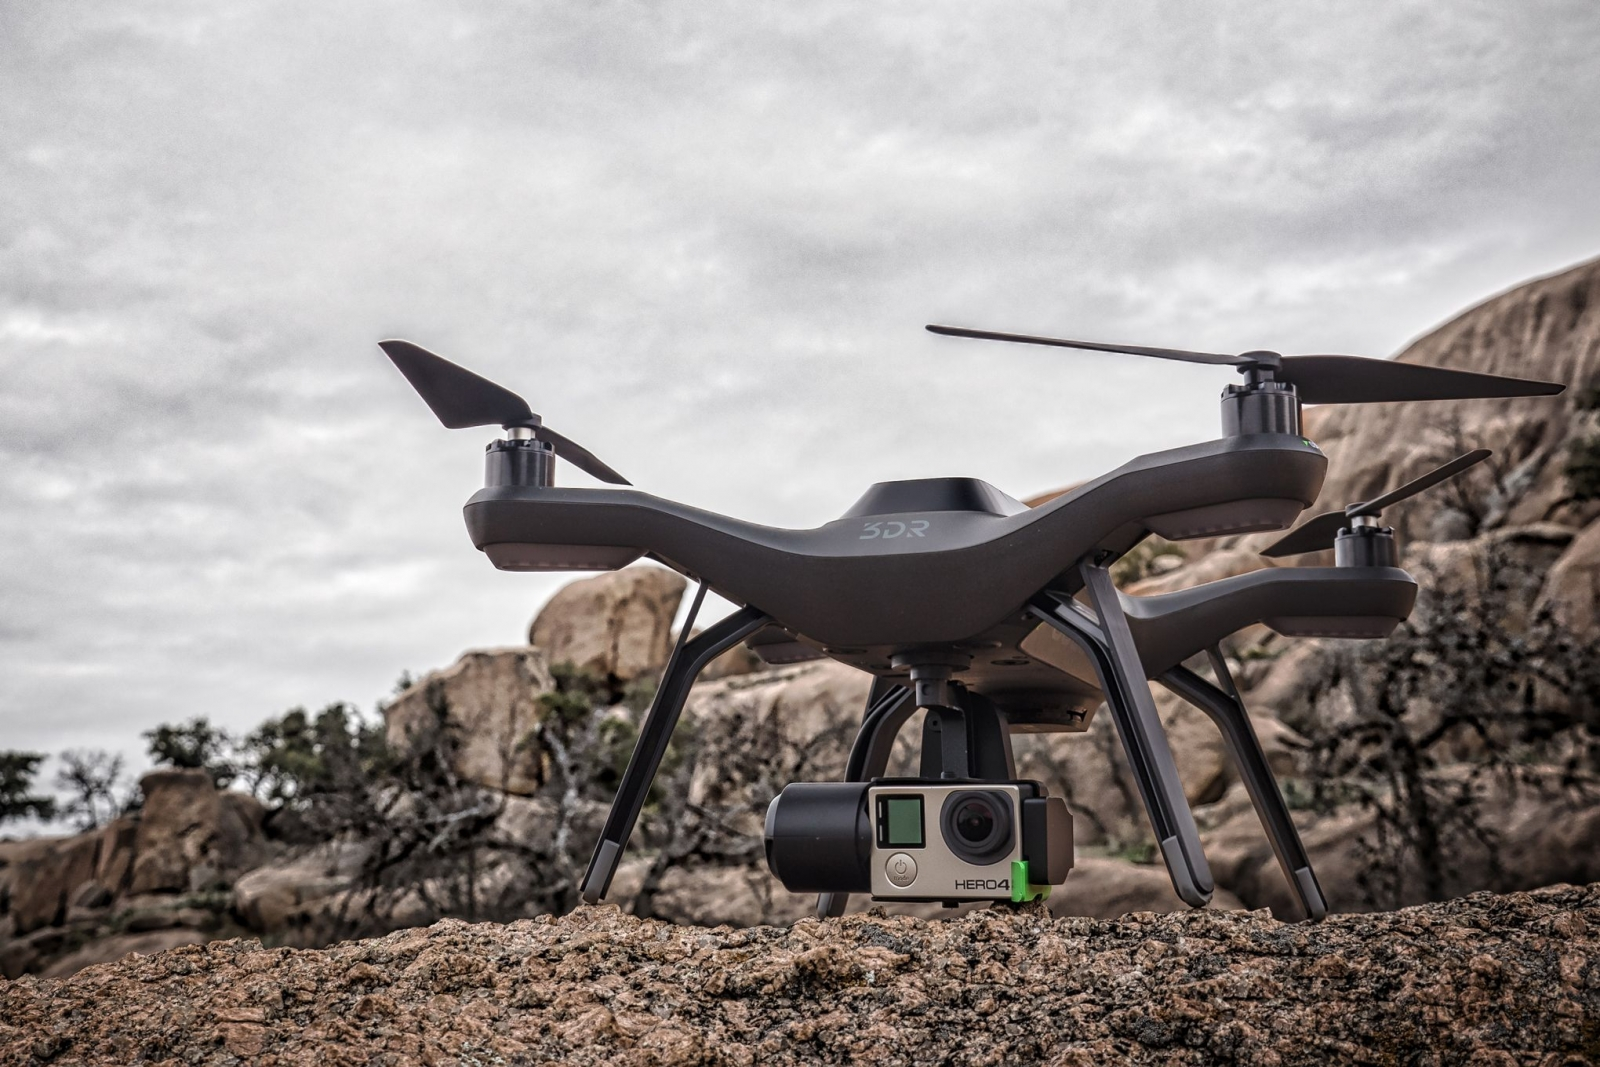 3D Robotics has launched the Solo drone